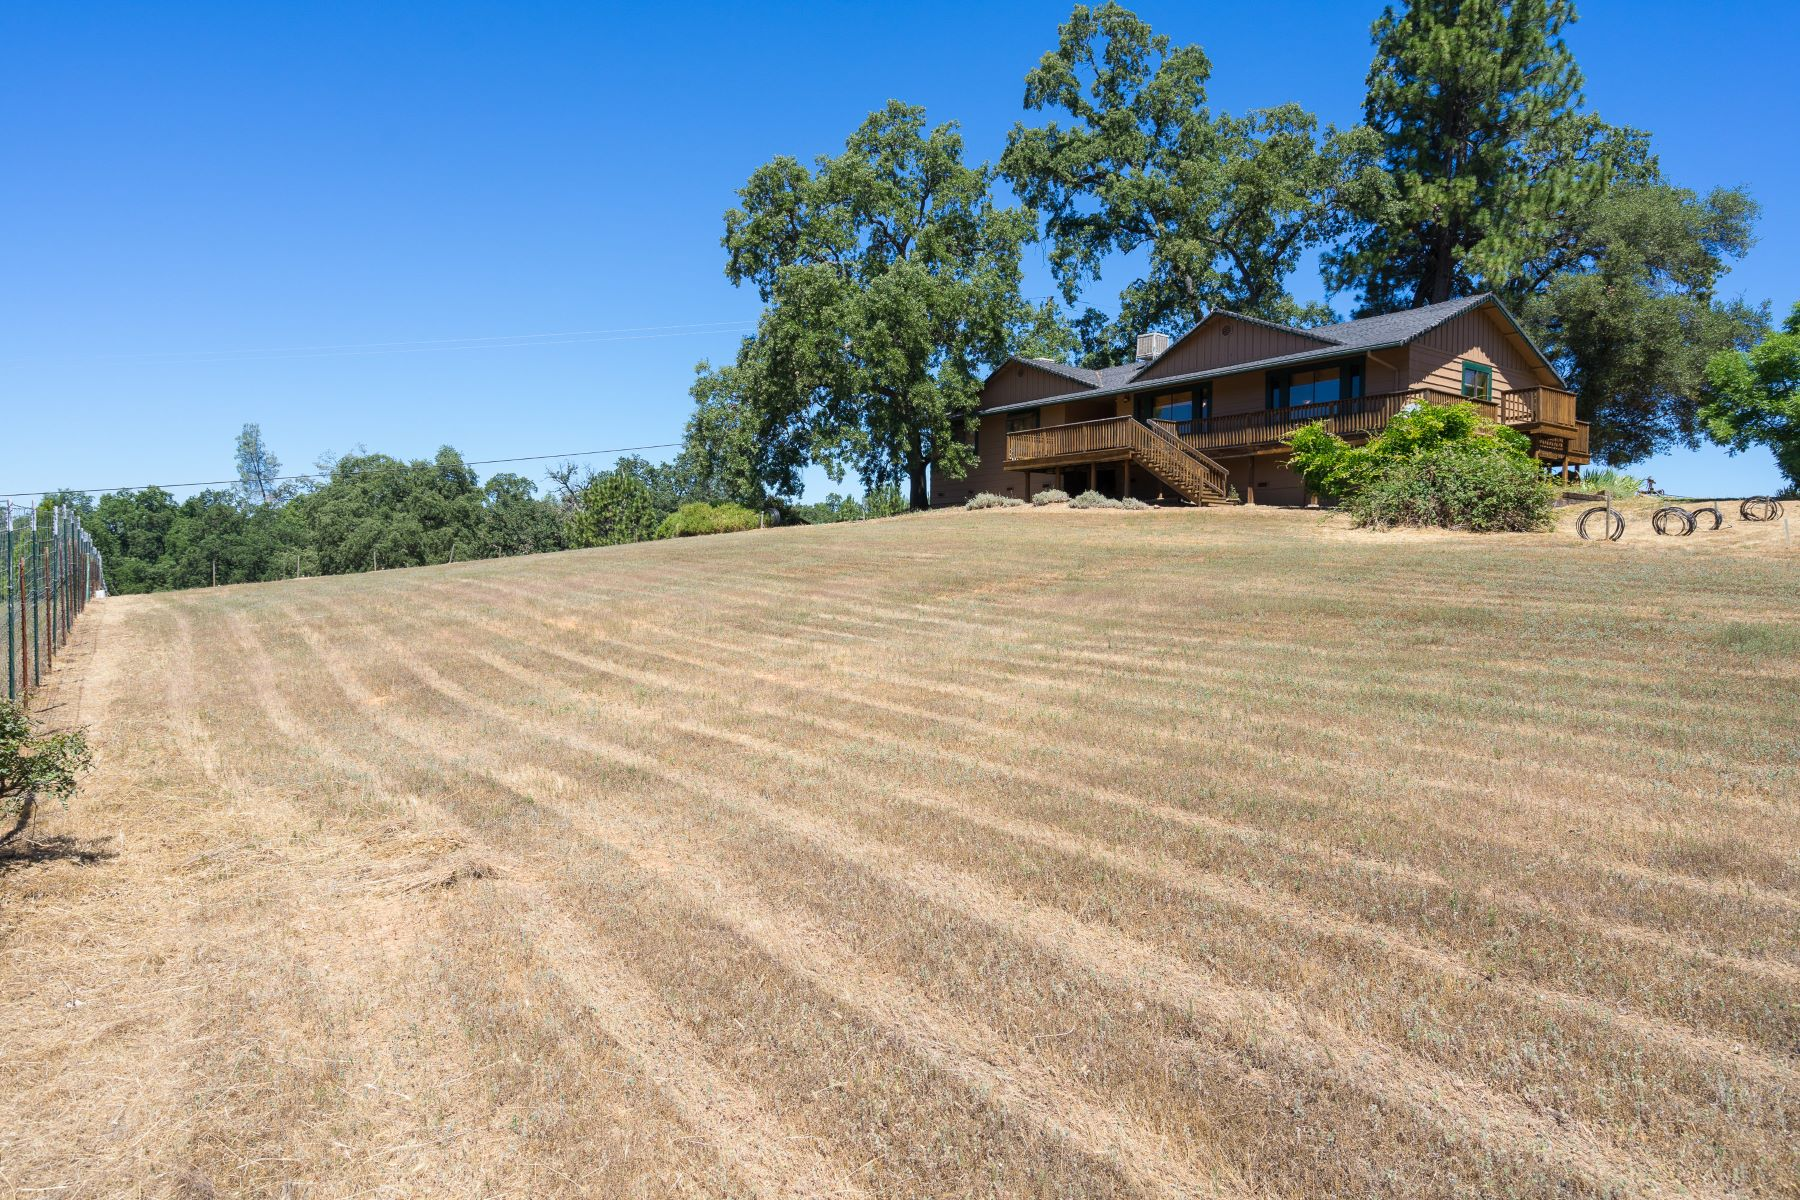 Single Family Home for Active at Ammenties Abound - 5 Rolling Acres 4340 Hollis Lane Mount Aukum, California 95629 United States